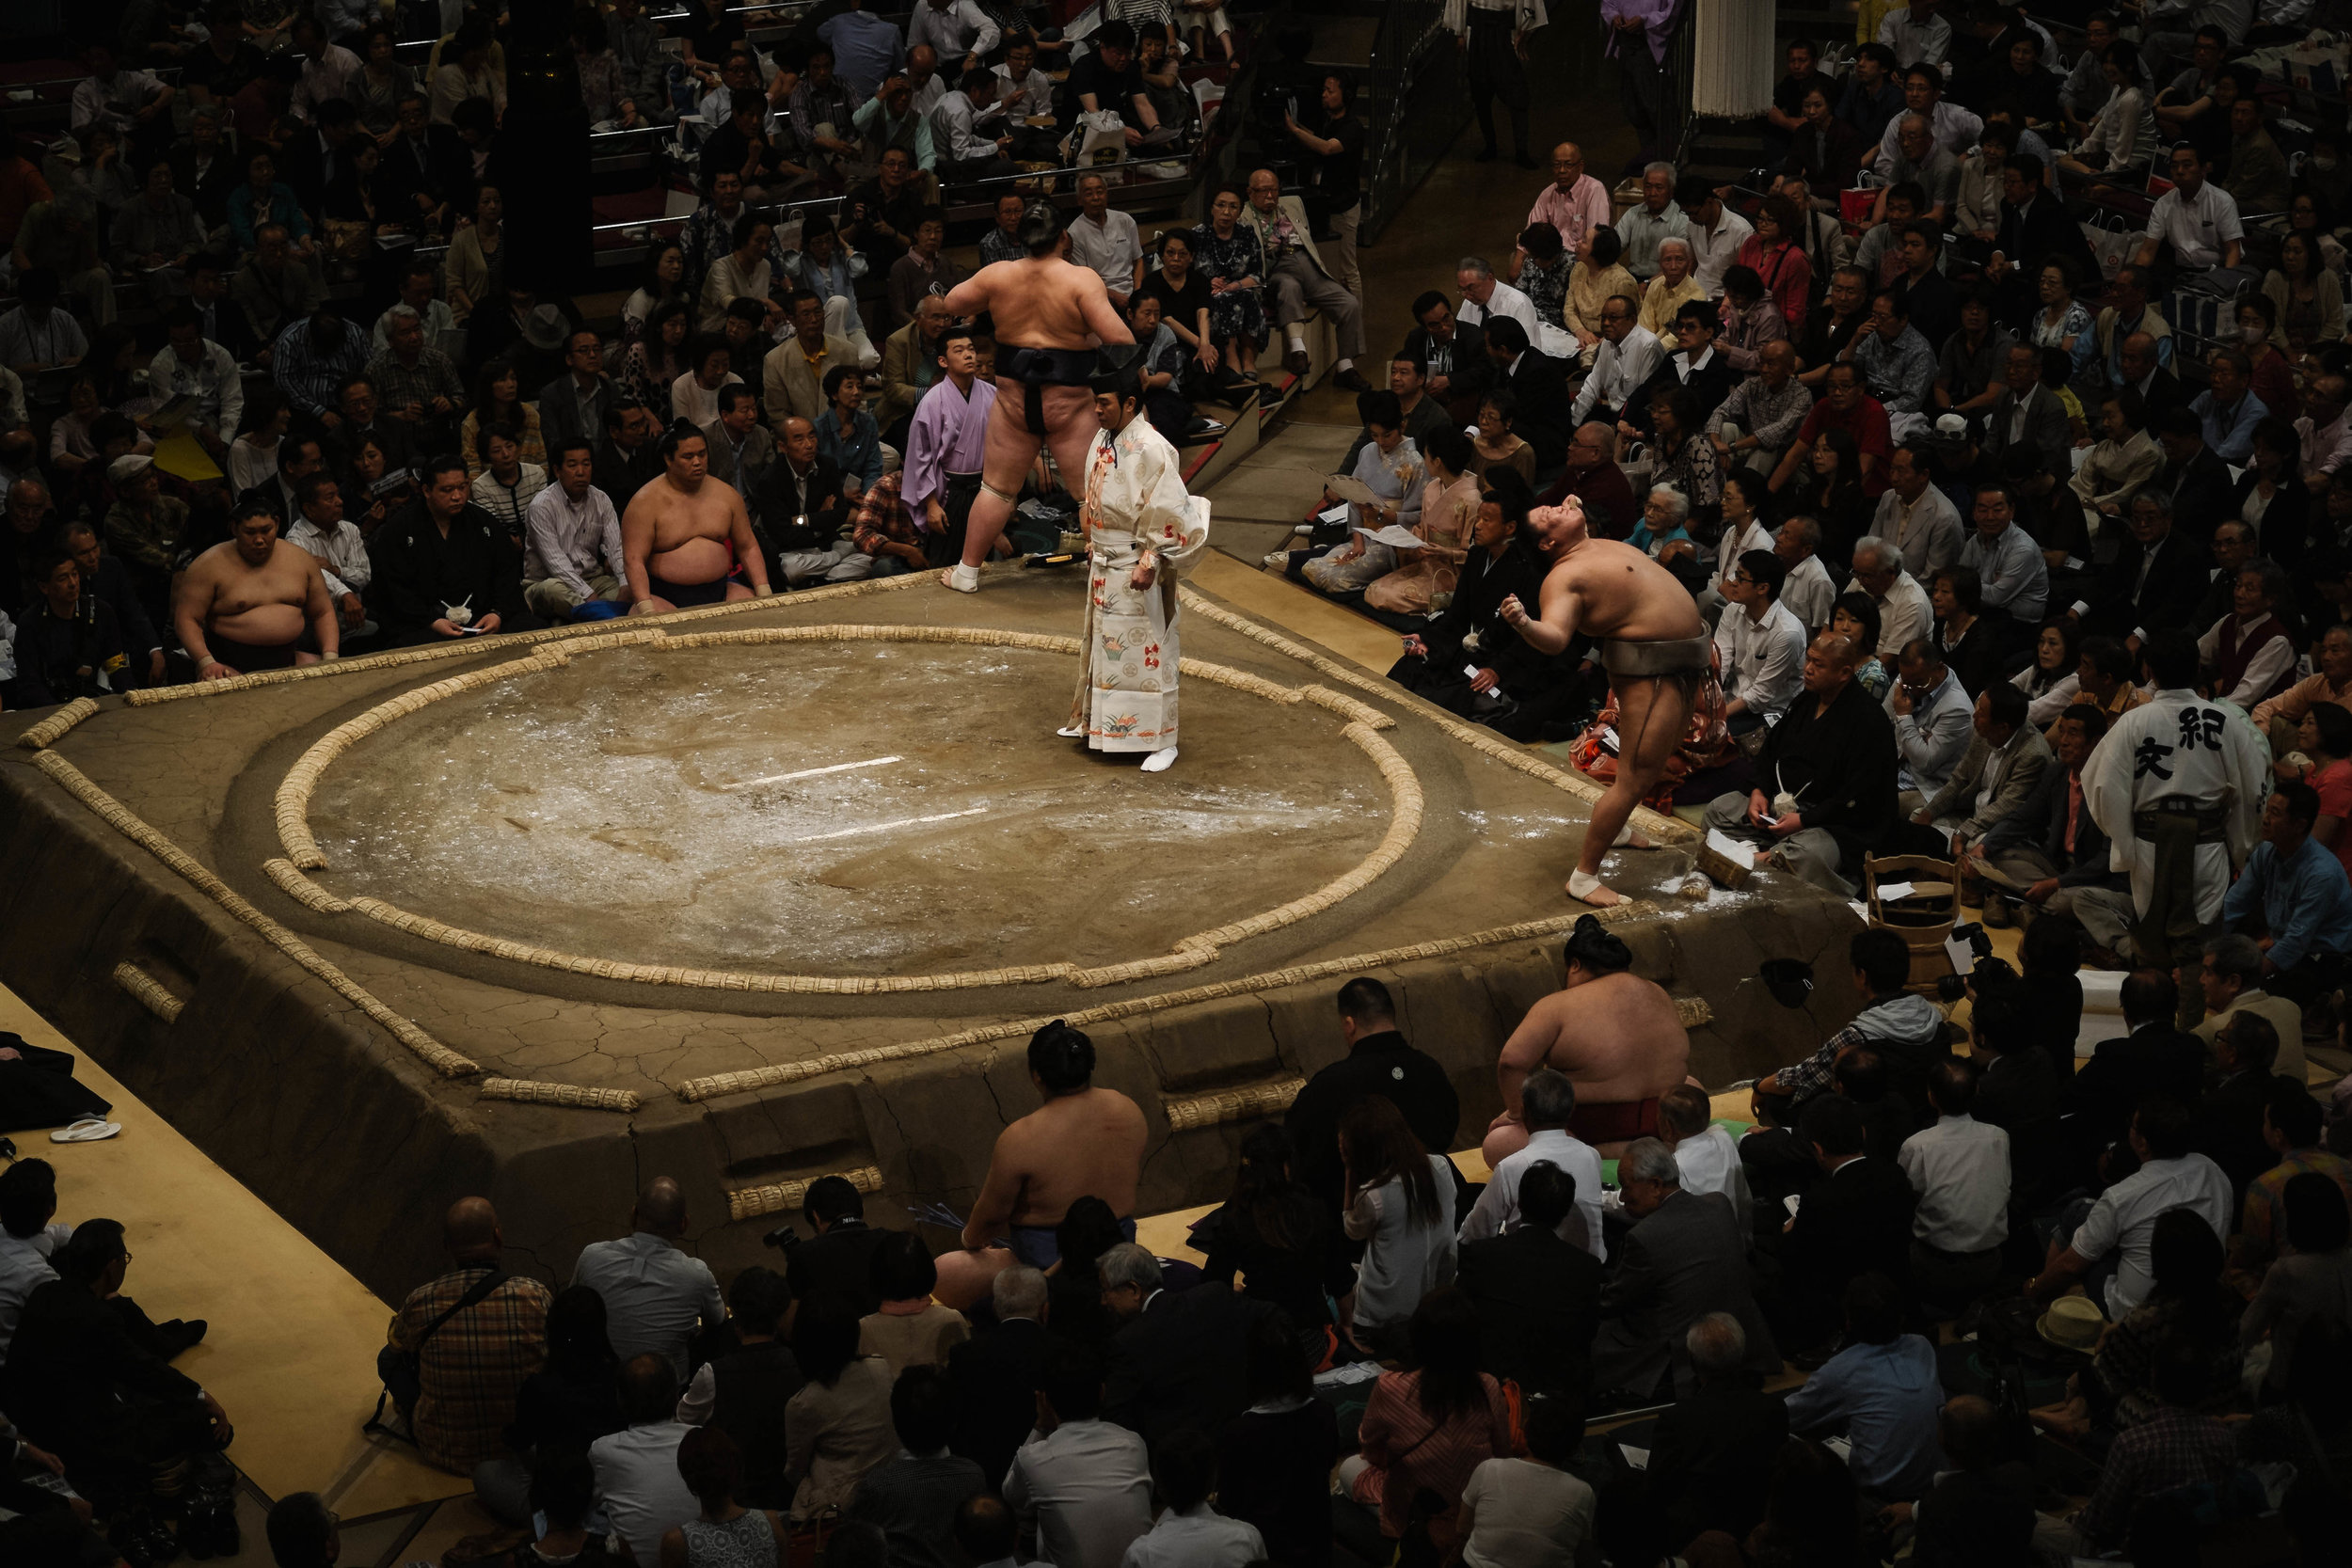 Rinsing mouth as per Shinto ritual and intimidation, Sumo tournament, Tokyo.